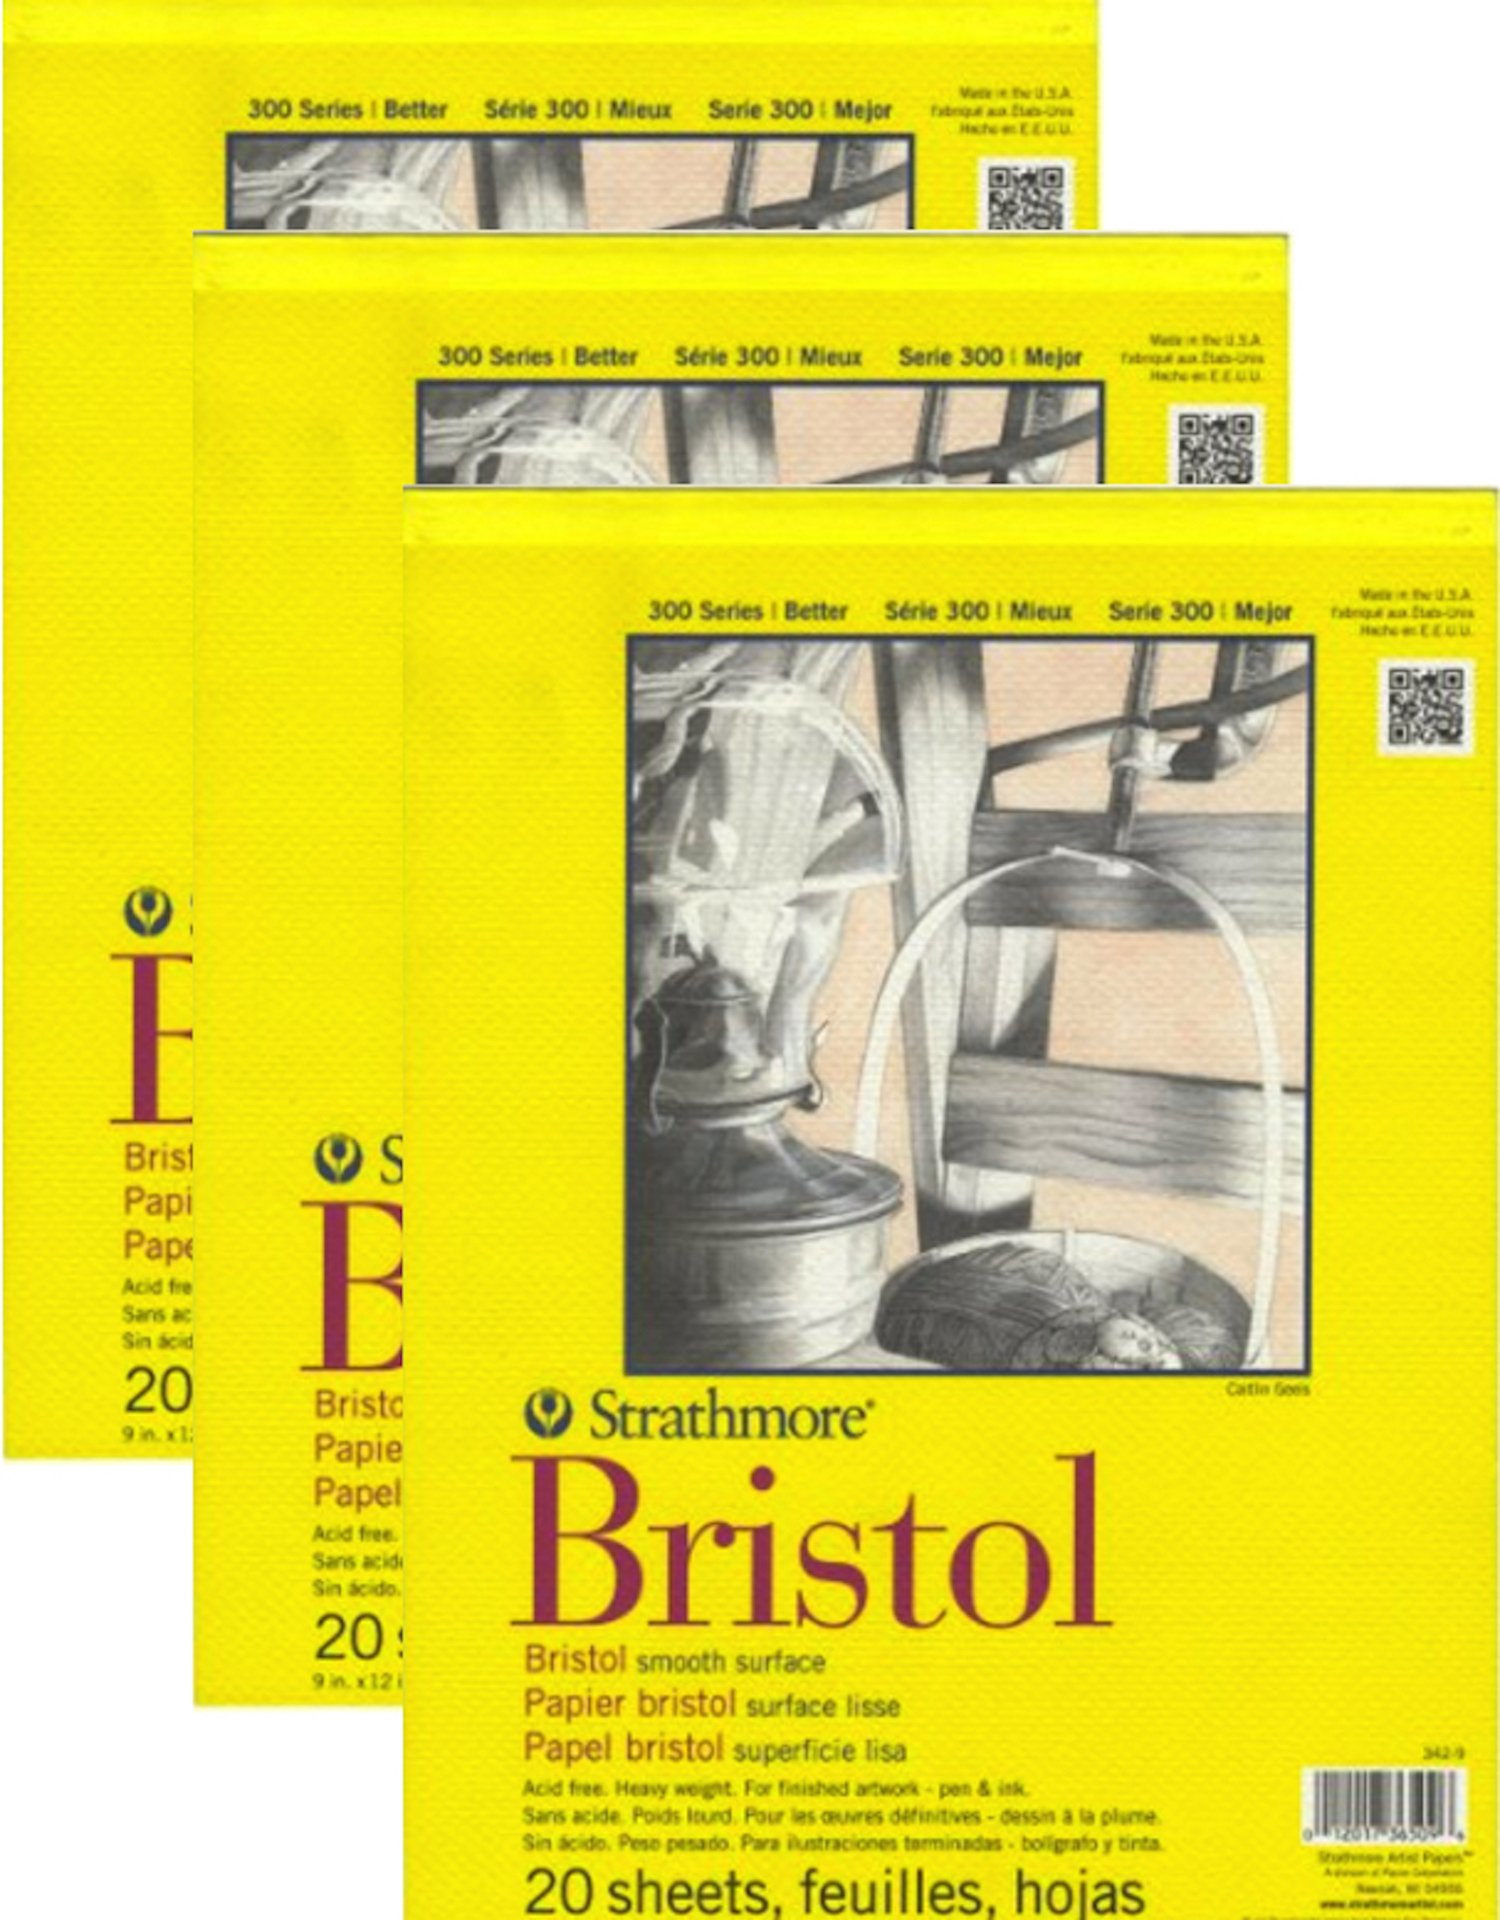 Strathmore 300 Bristol Board - 3 Pack Bundle - Smooth Paper Pad - 9 x 12 by Anahs Market